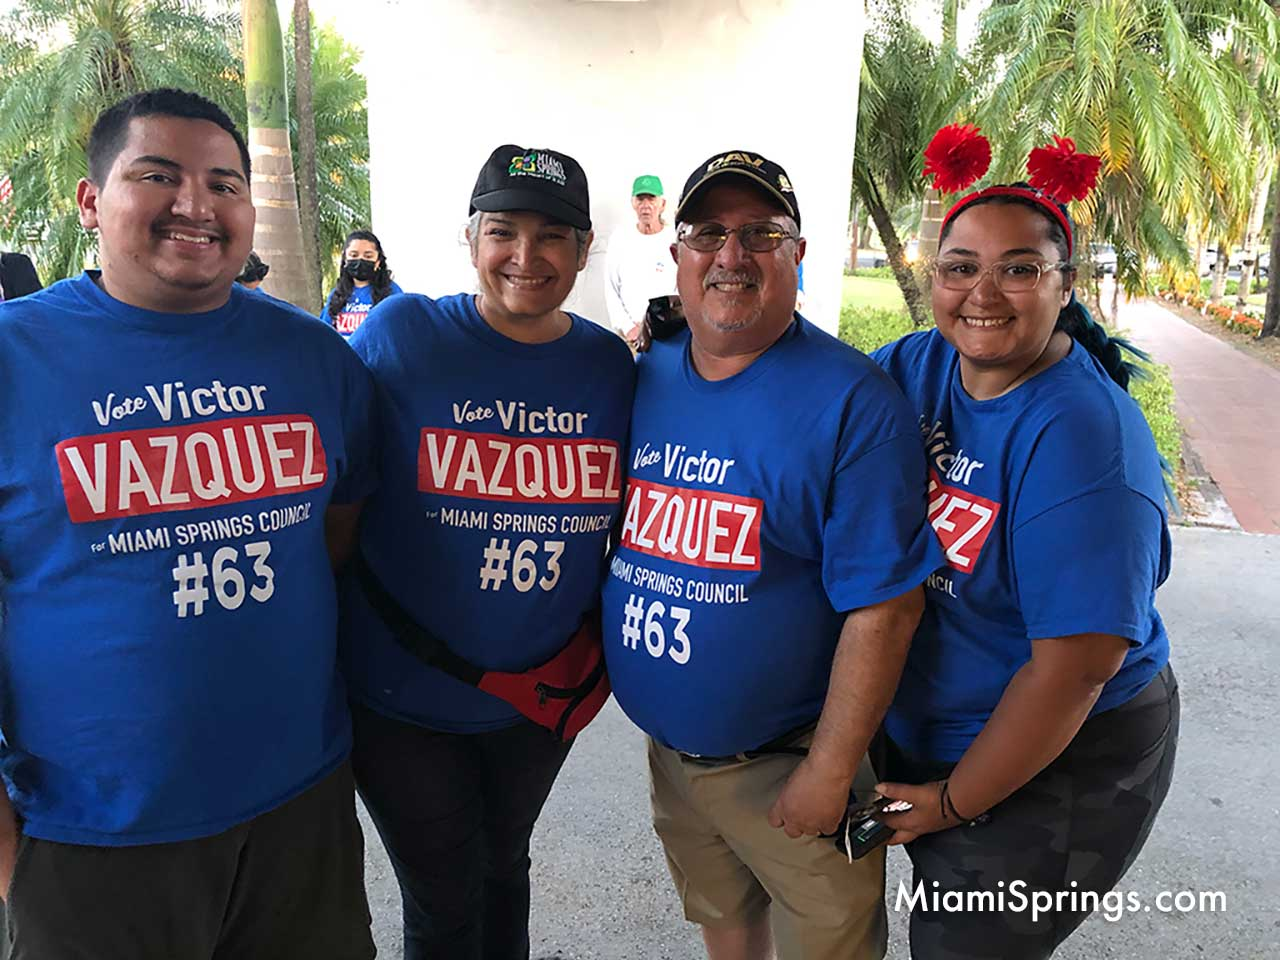 Councilman Victor Vazquez with his family.